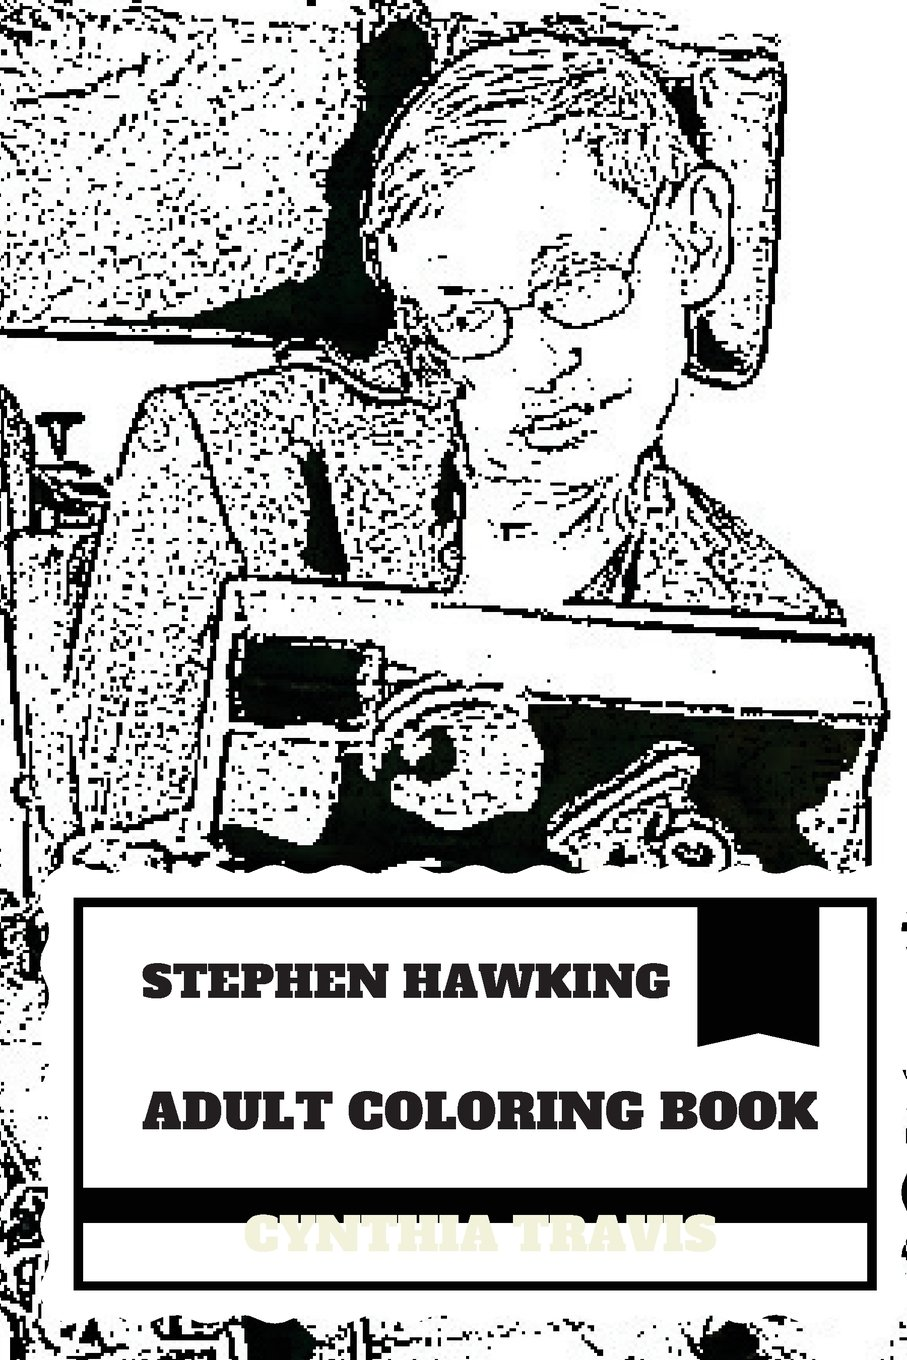 Stephen Hawking Adult Coloring Book: Famous Theoretical Physicist and Cosmologist, Pop Scientist and Academy Member Inspired Adult Coloring Book